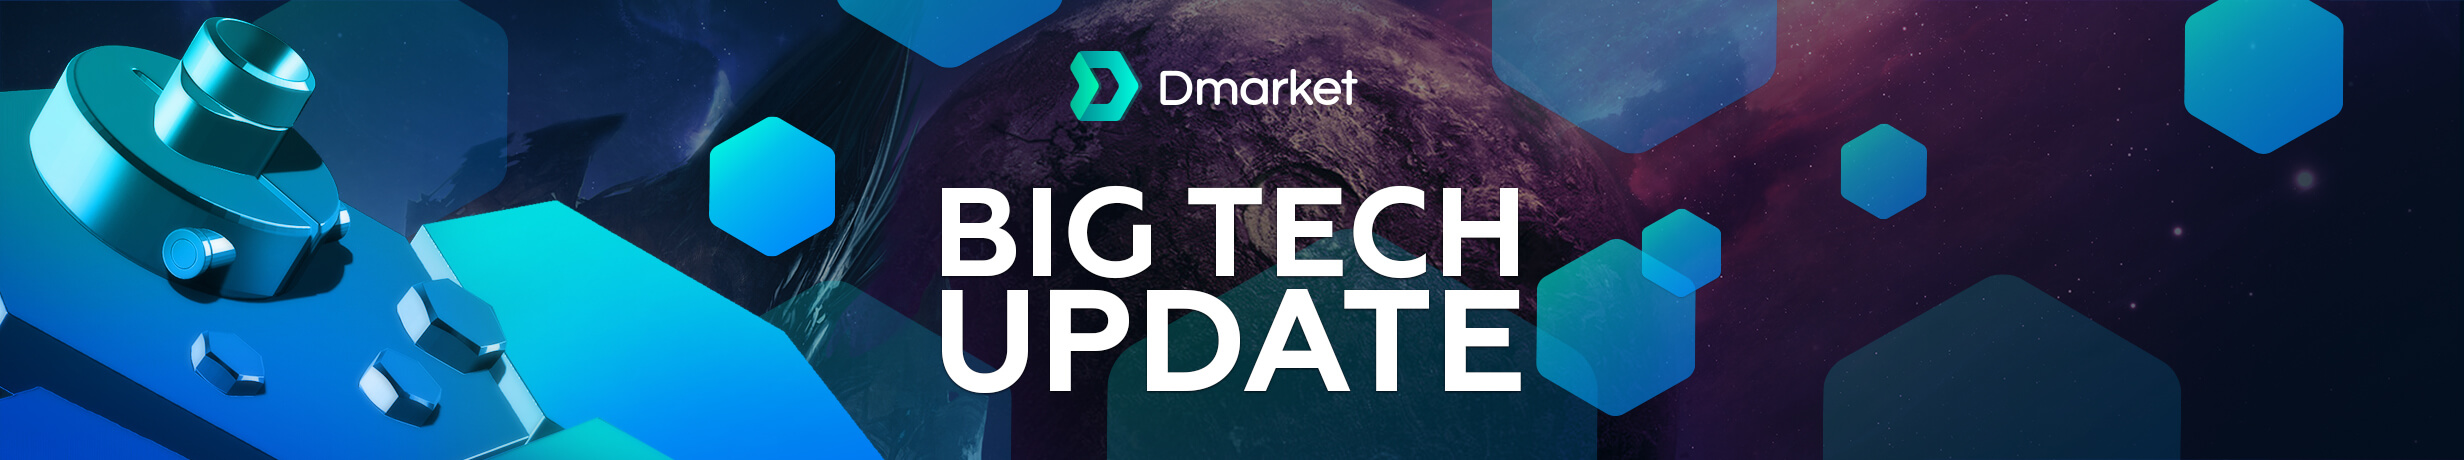 DMarket Tech Update: Check out New Features